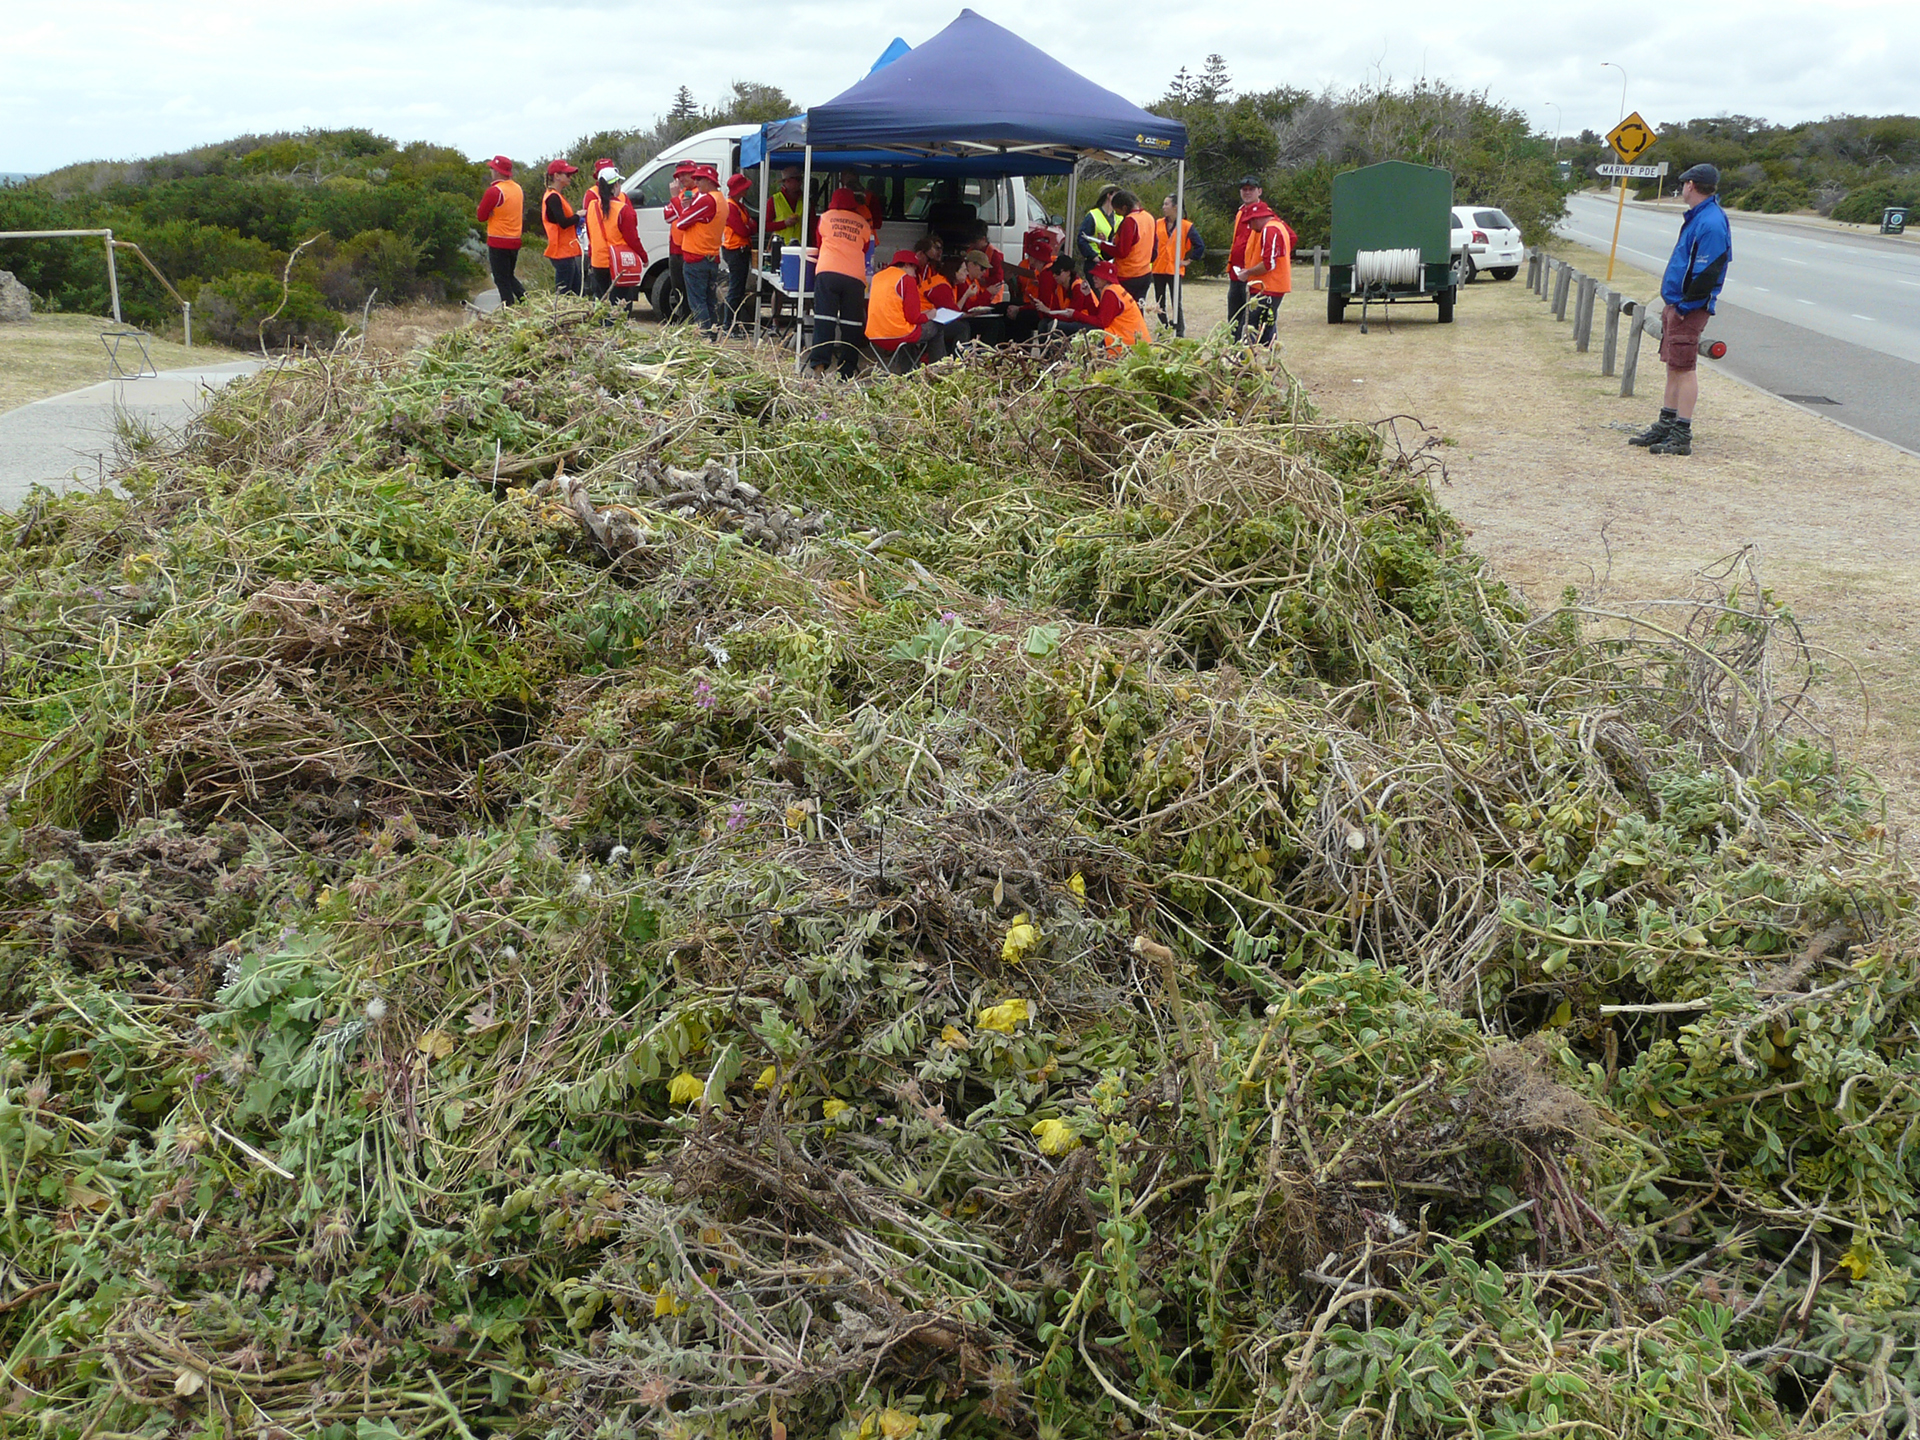 The pile of weeds near the lunch tent at Vlamingh Memorial